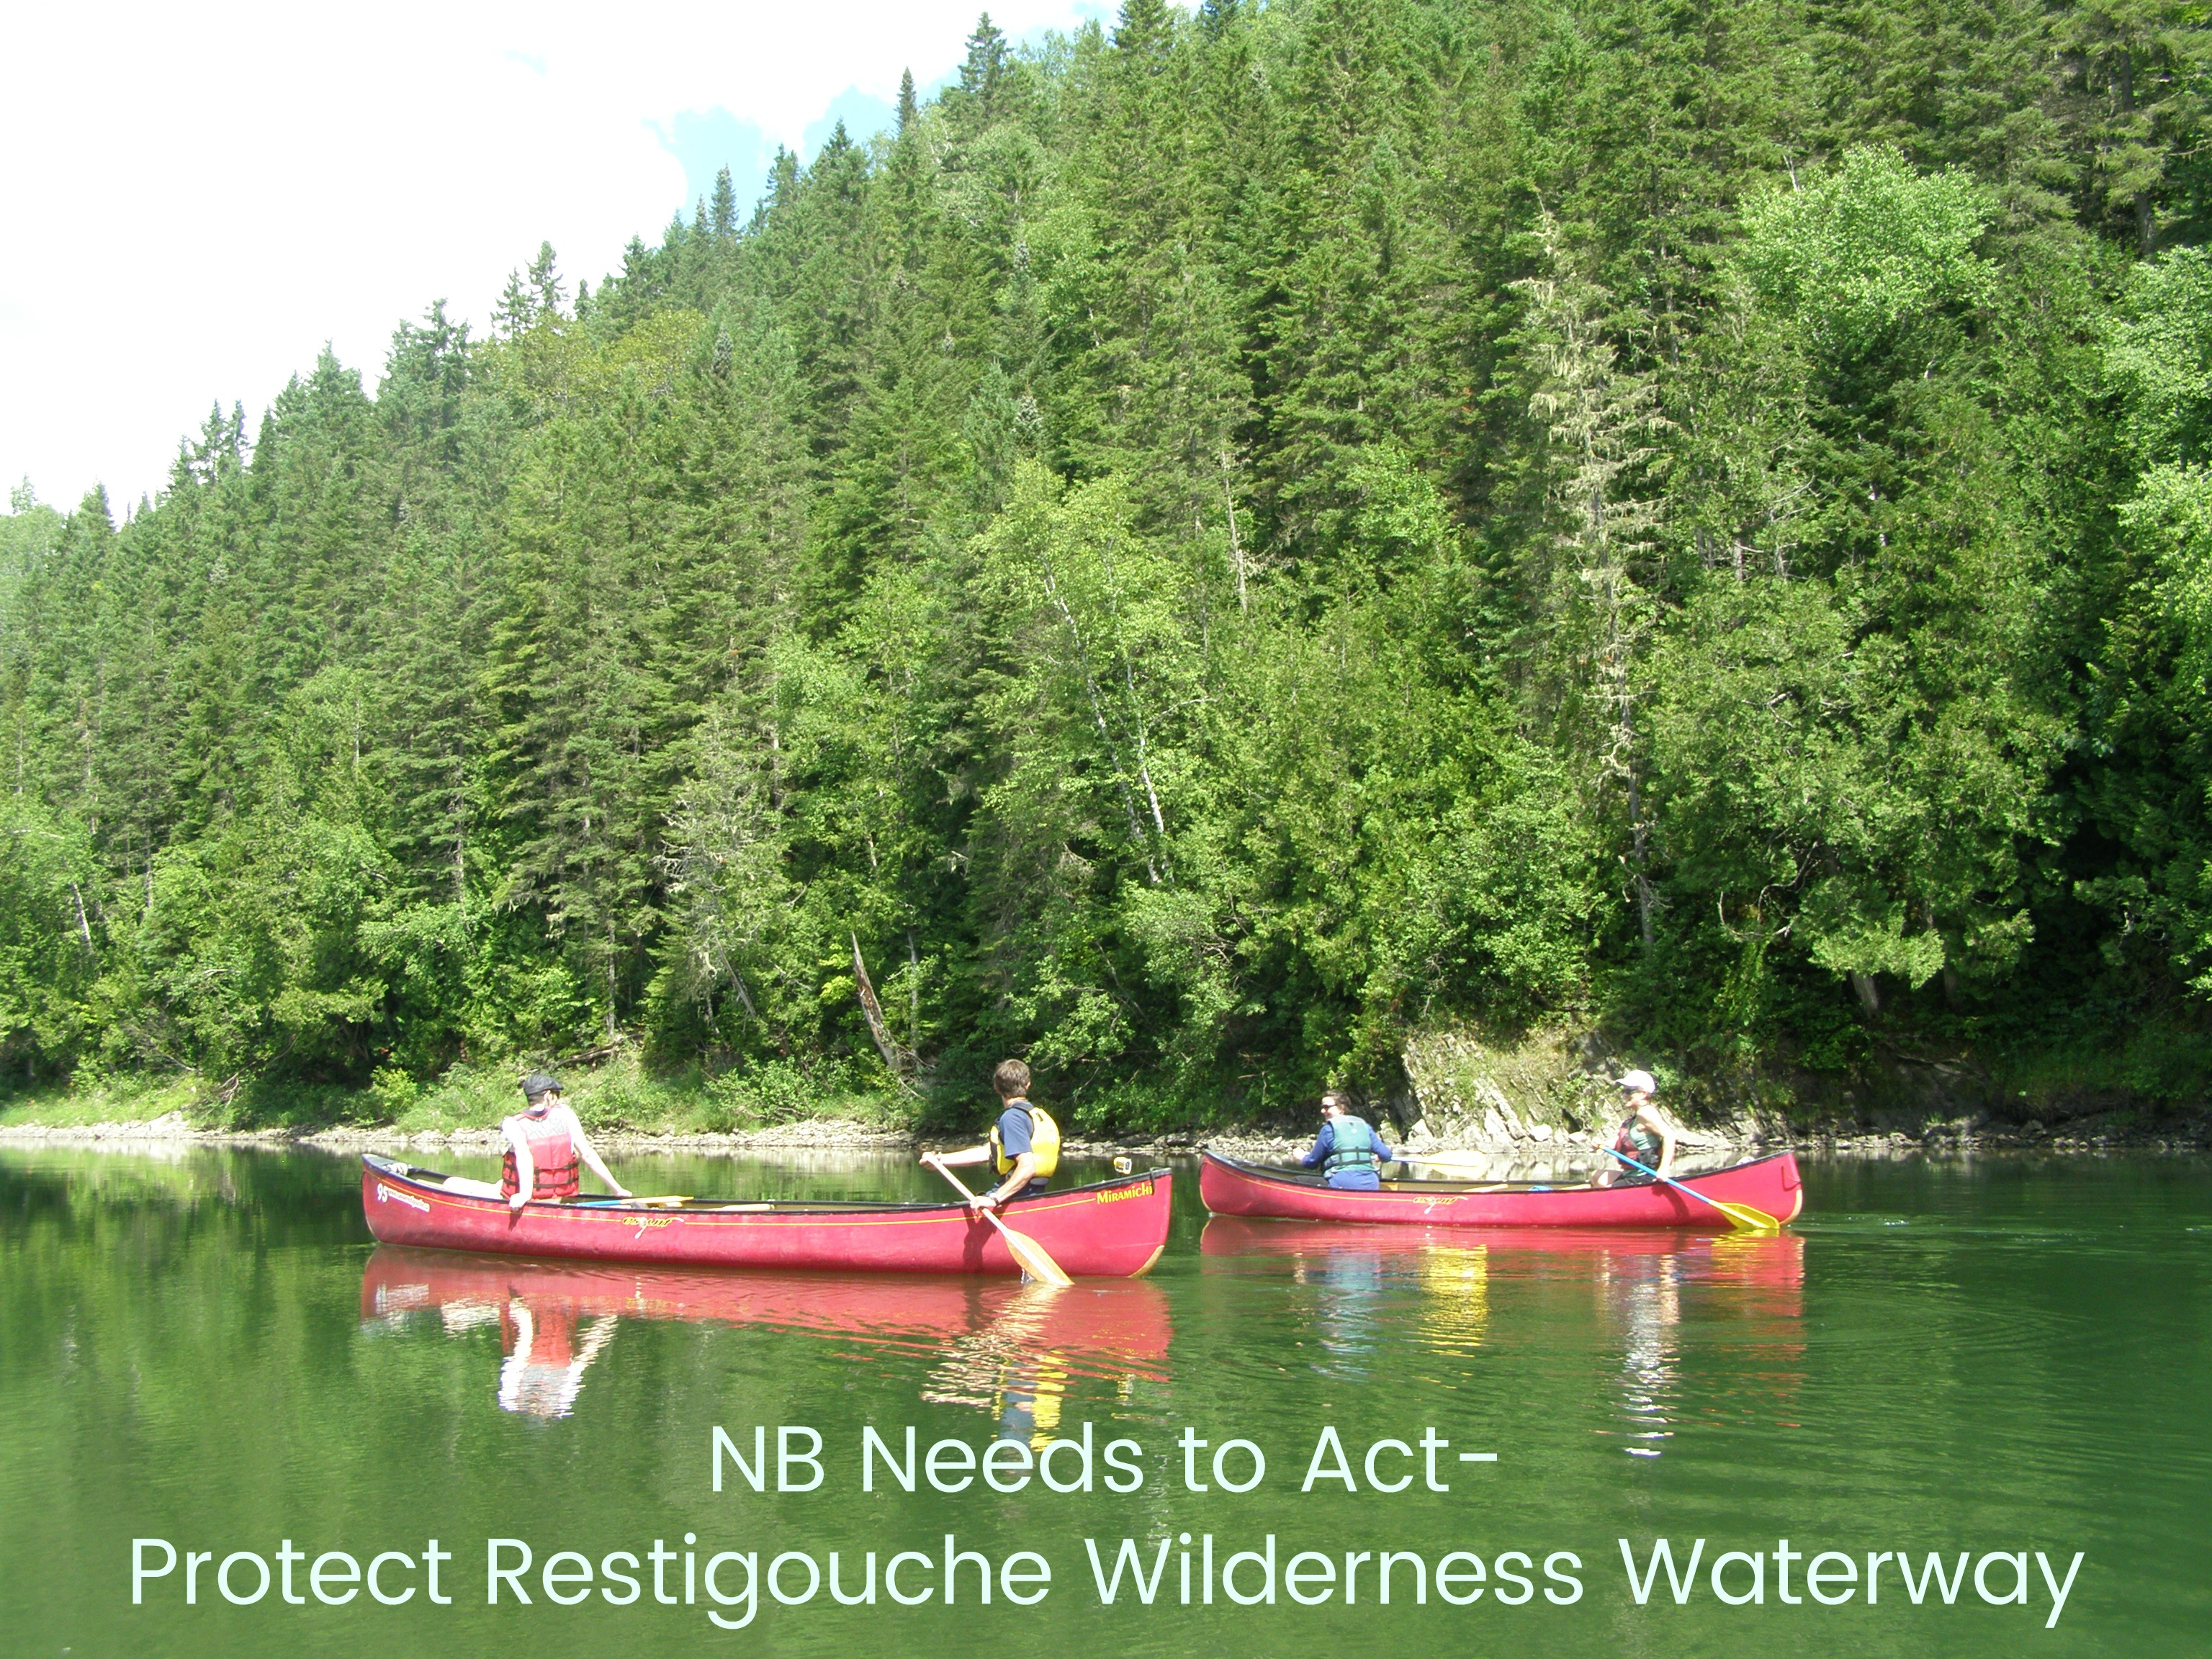 NB Needs to Act Protect Restigouche Wilderness Waterway2